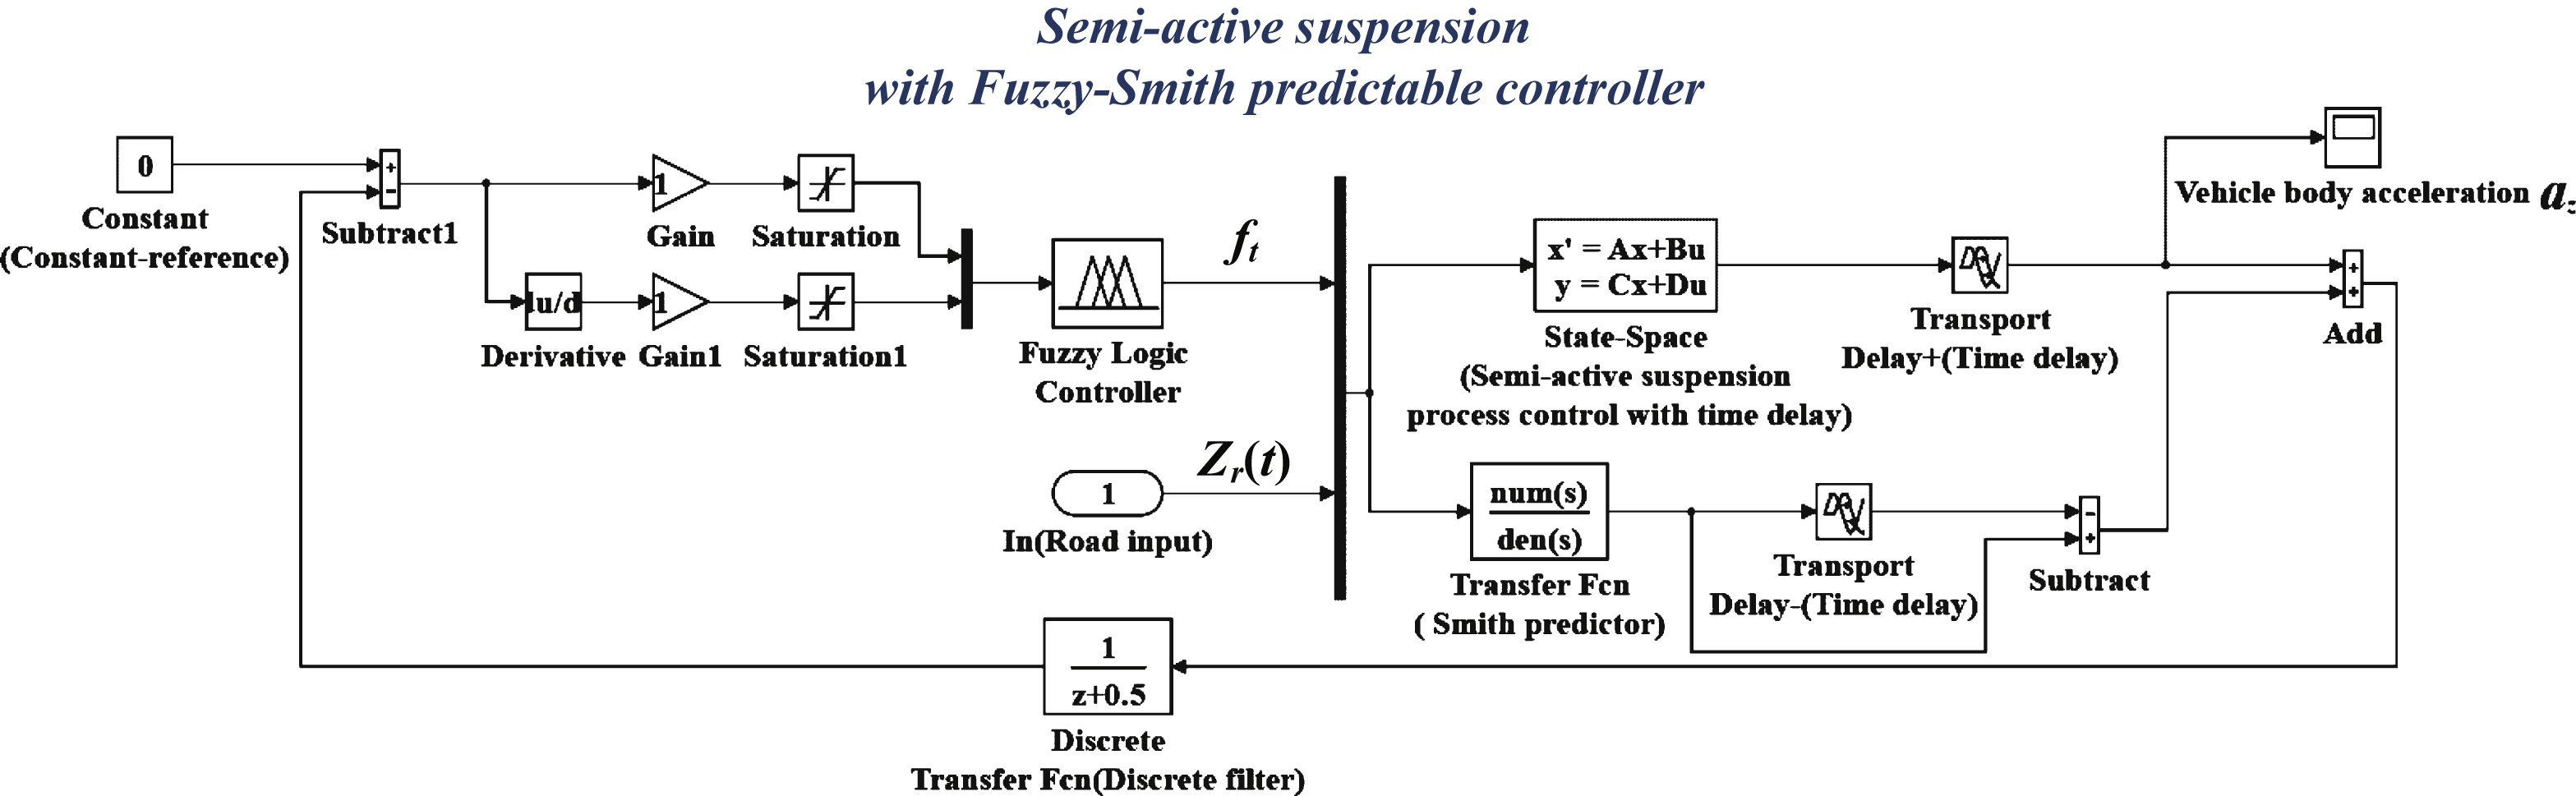 Fuzzy Logic Block Diagram Schematic Diagrams Symbols Stability Analysis And Smith Compensation Control For Semi